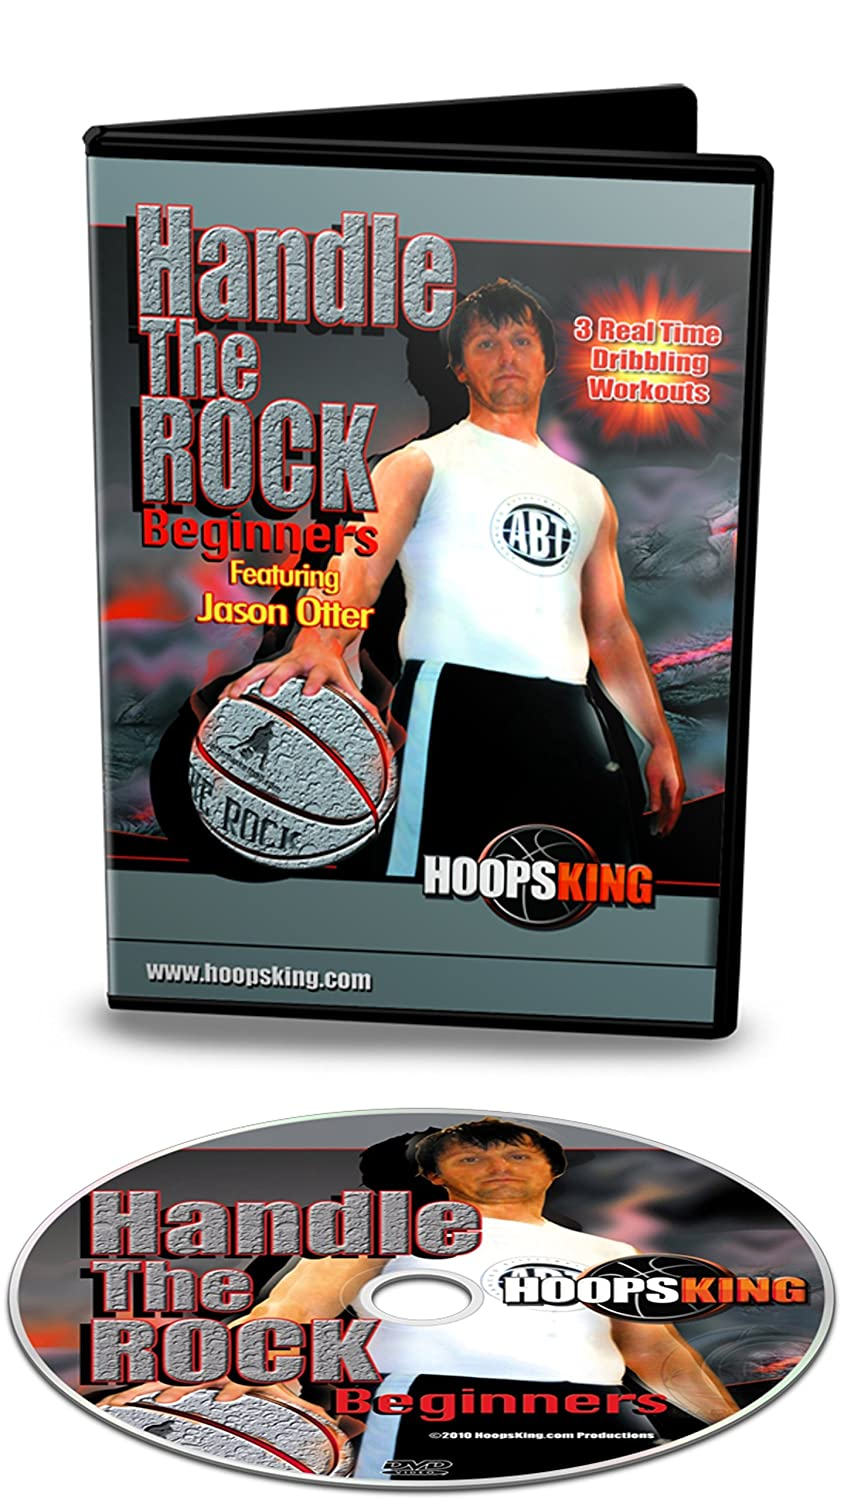 HoopsKing Handle The Rock Beginner Workouts - DVD - Follow Right Along with The Video - Learn from A Pro Trainer - Real Time Workouts - Pro Trainer ...